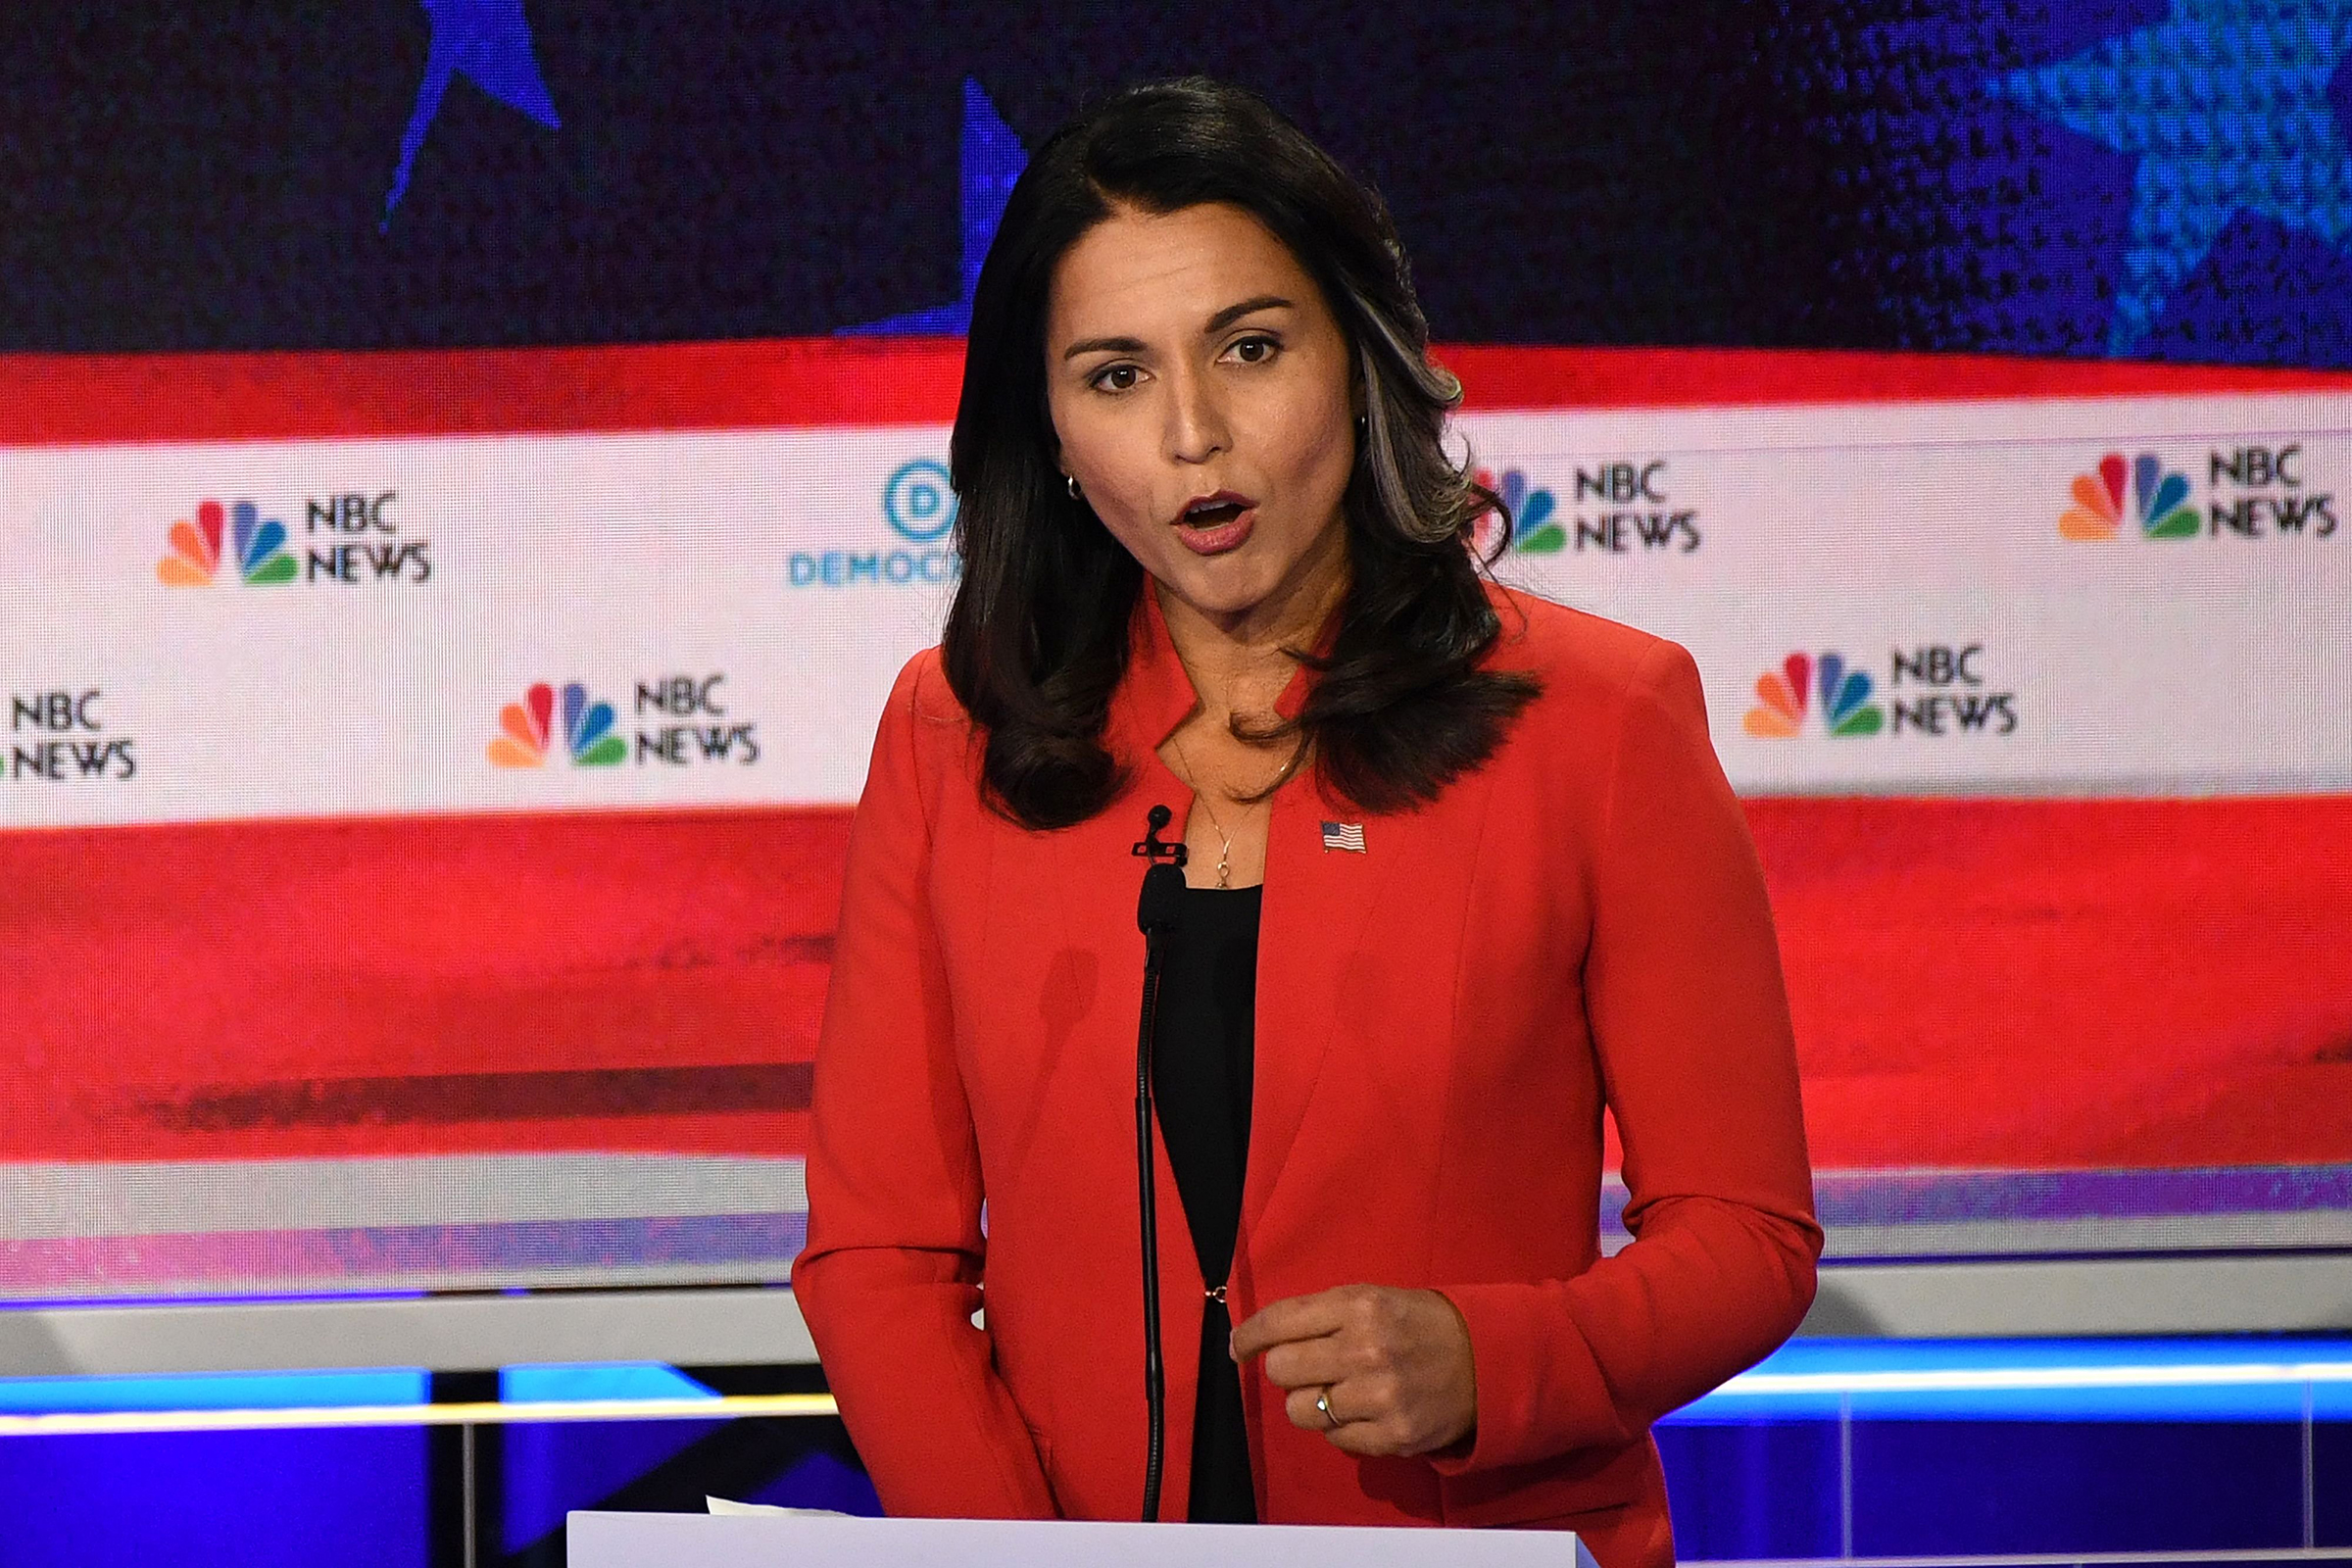 Democratic presidential hopeful US Representative for Hawaii's 2nd congressional district Tulsi Gabbard speaks during the first Democratic primary debate of the 2020 presidential campaign season hosted by NBC News at the Adrienne Arsht Center for the Performing Arts in Miami, Florida, June 26, 2019.